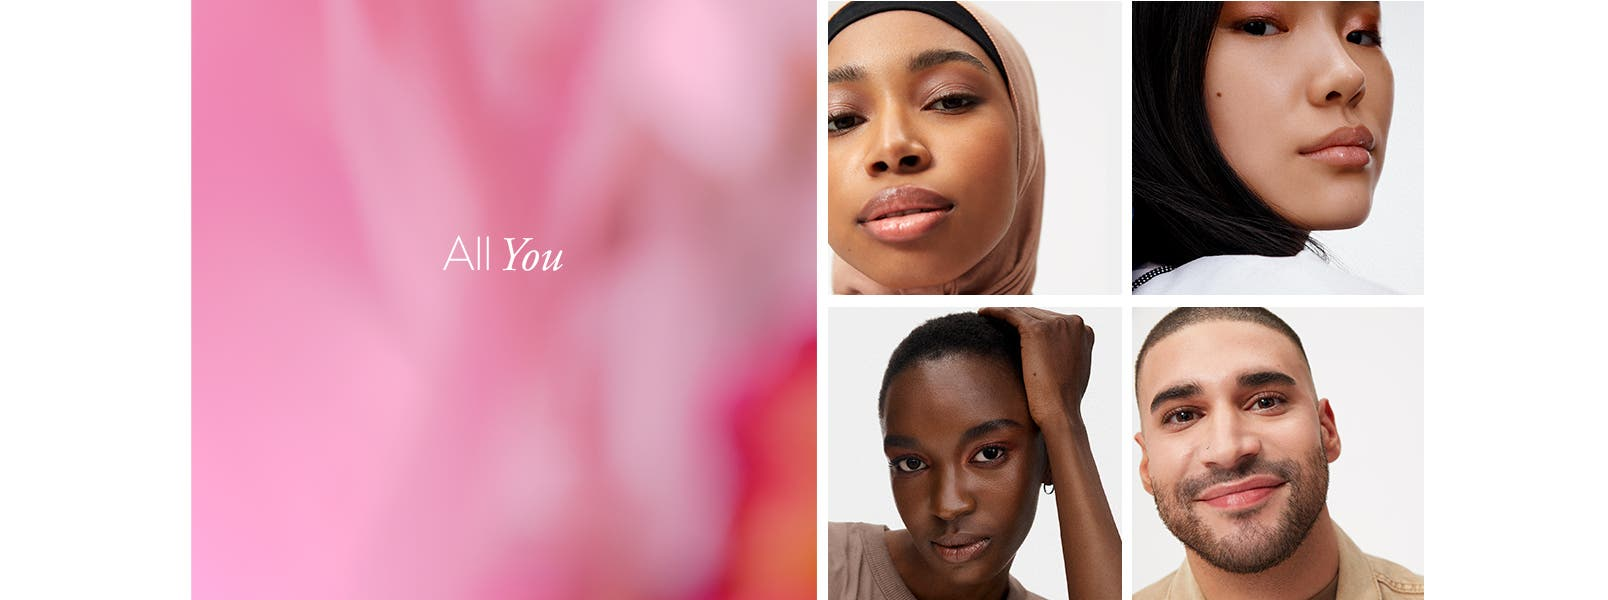 All you: makeup for everyone.